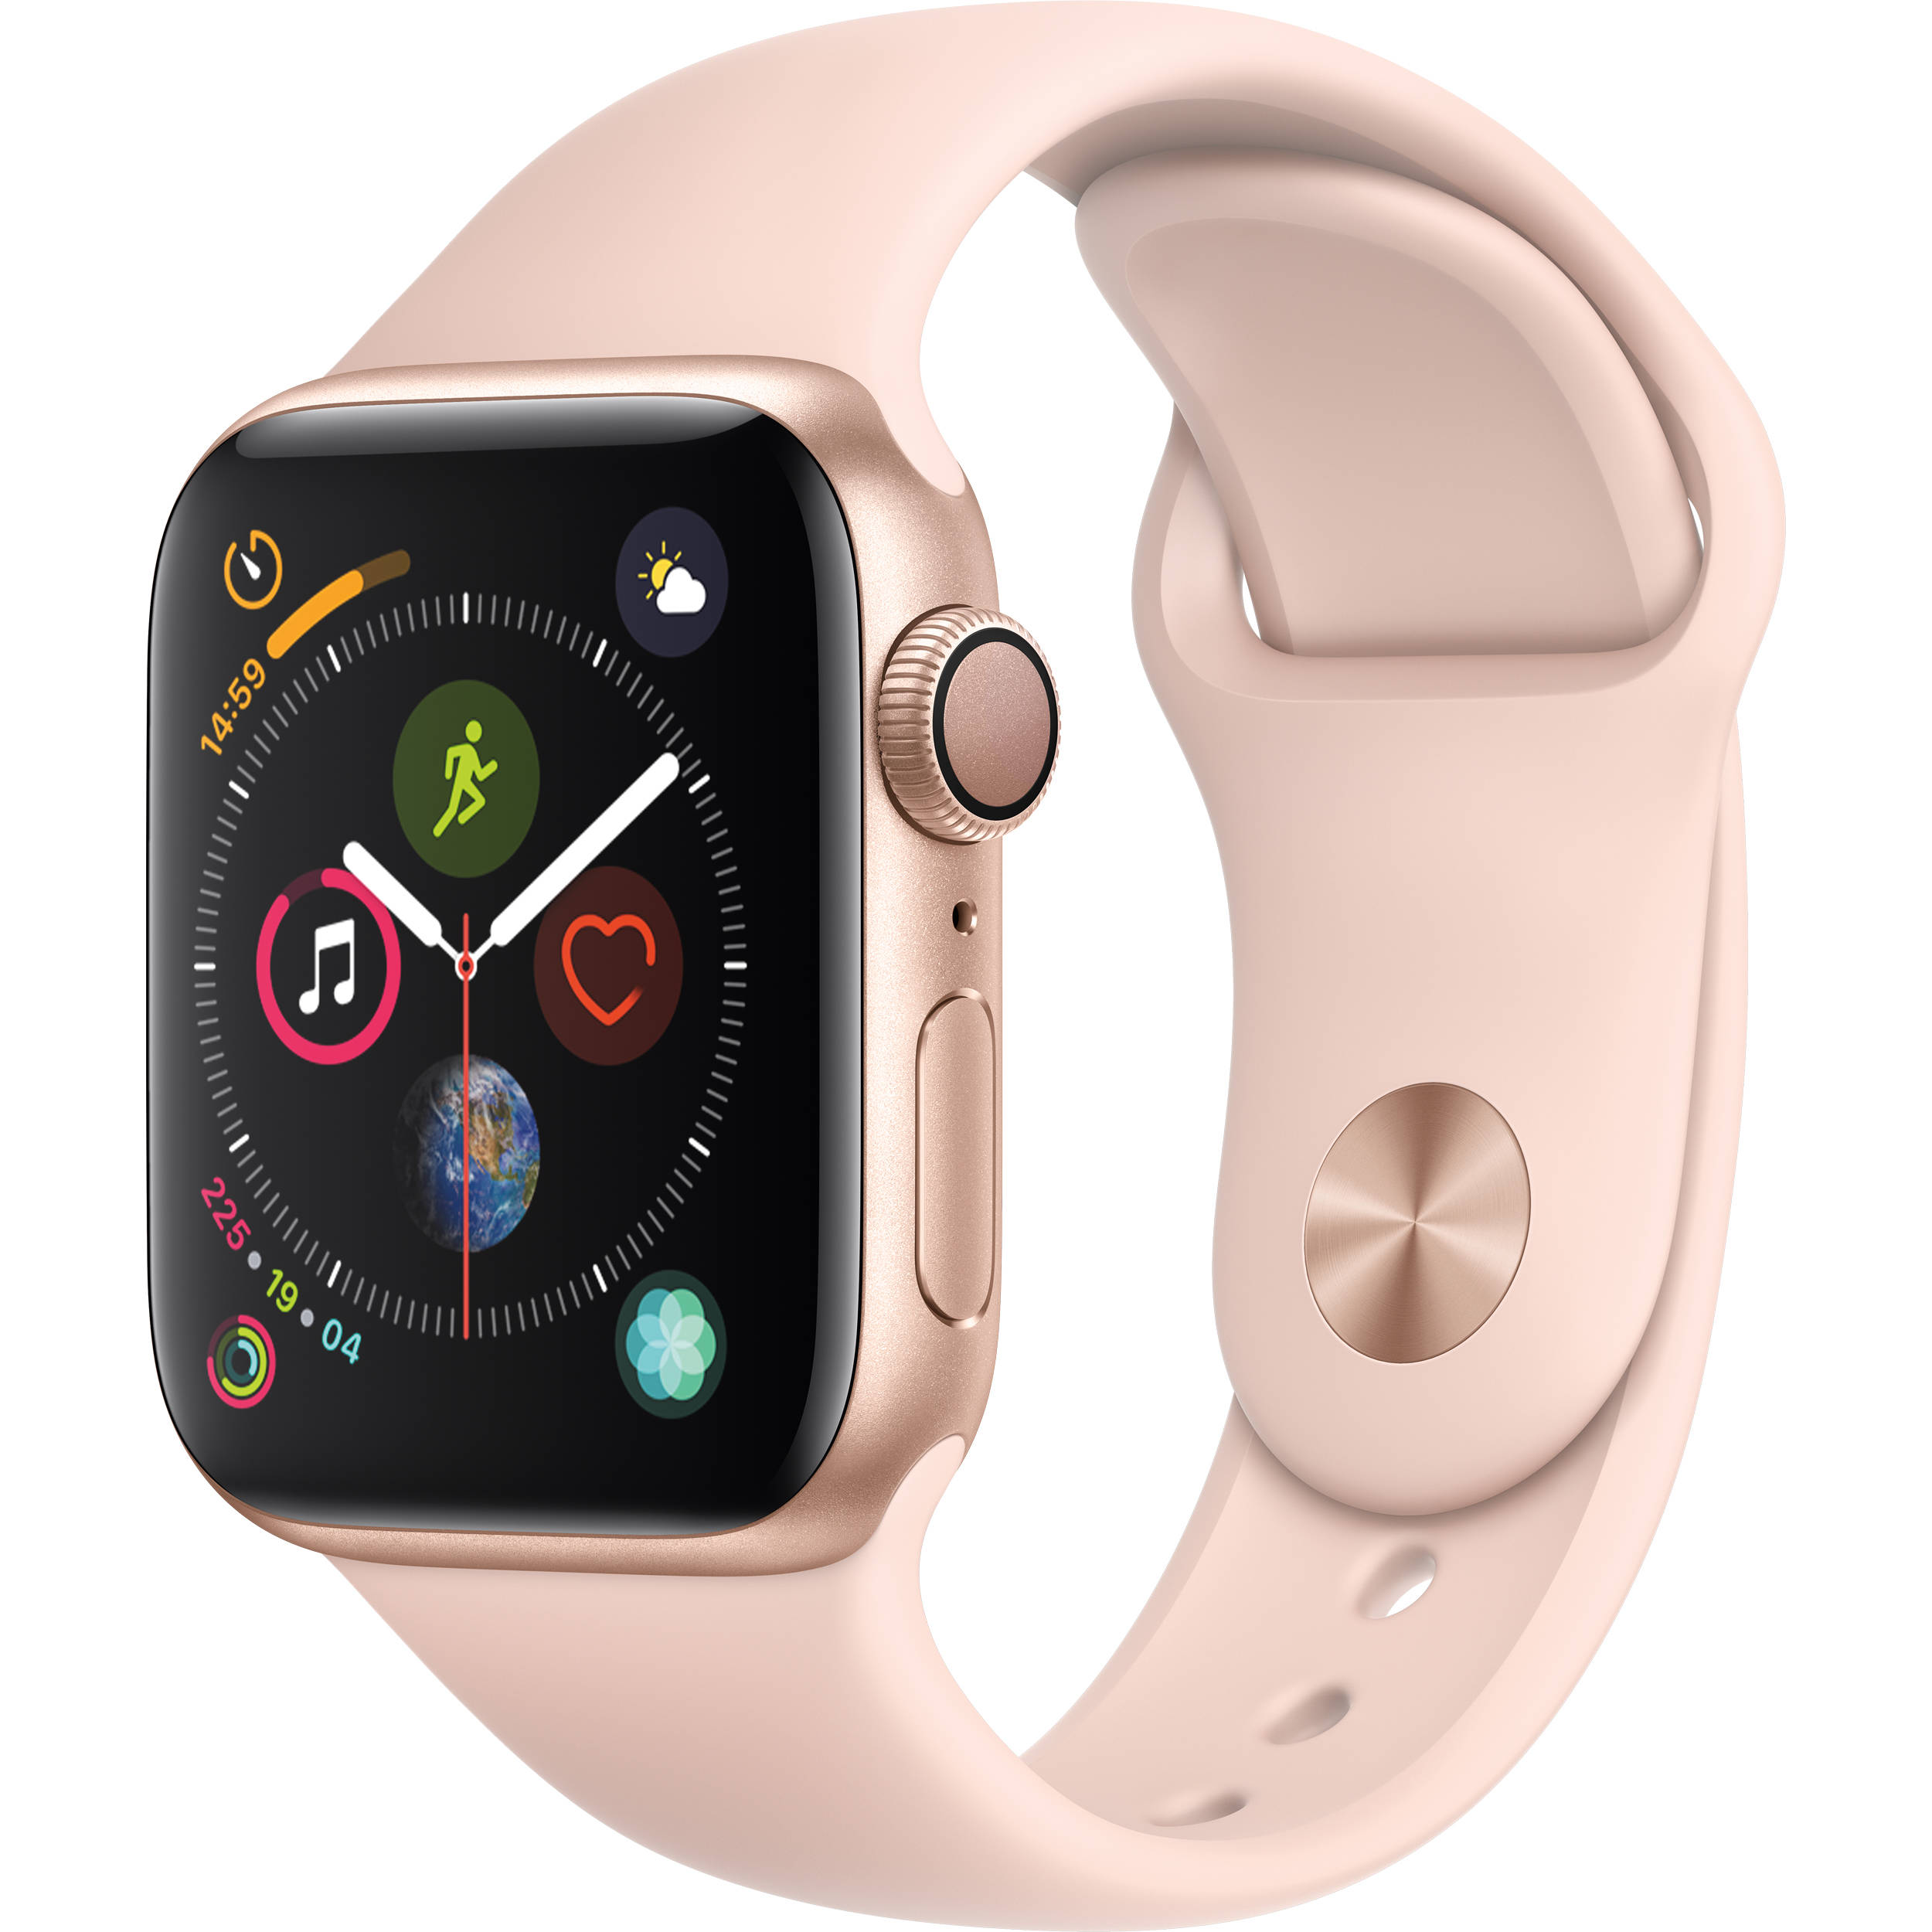 Apple Watch Series 4 Gold Aluminum Case with Pink Sand Sport Band (GPS ) 40mm Band fits 130–200mm wrists